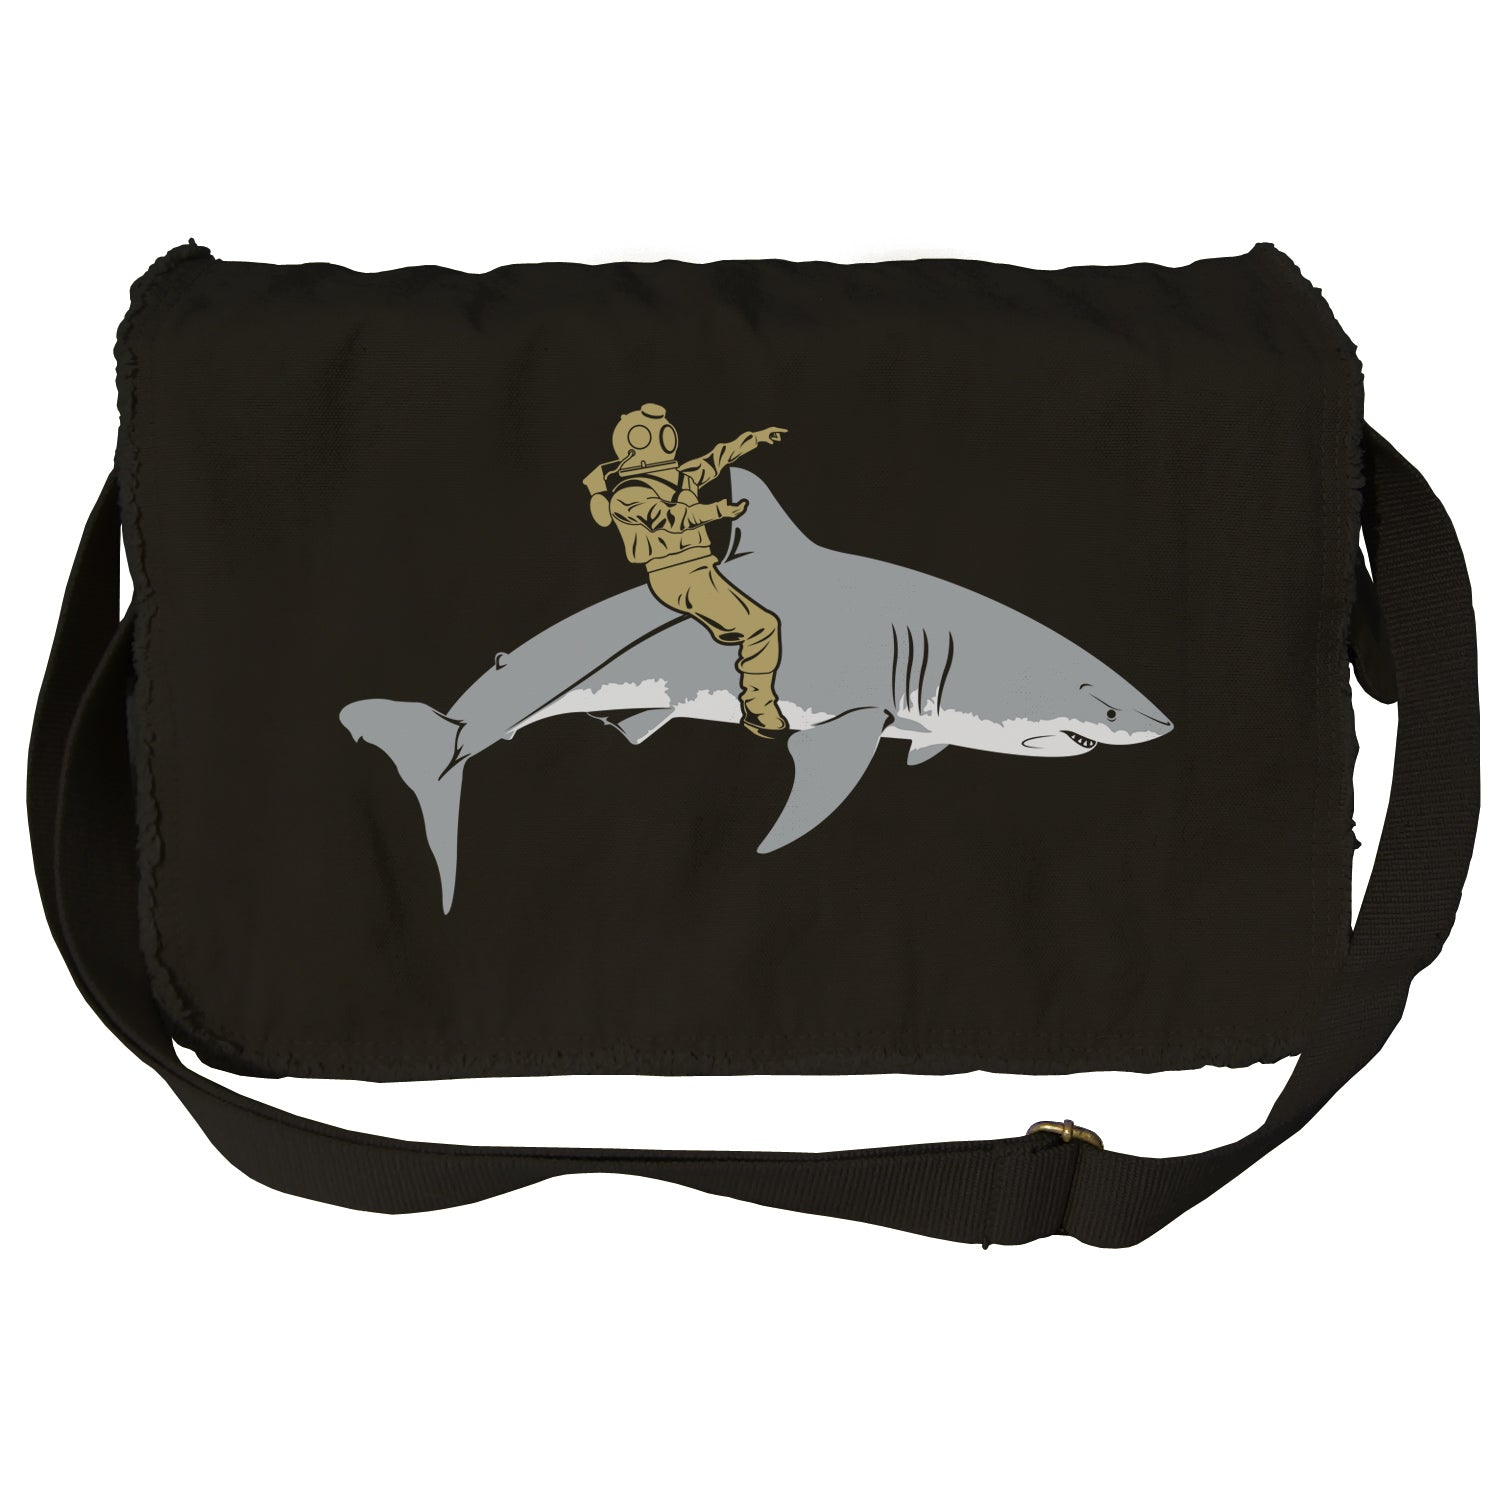 Diver Riding a Shark Messenger Bag - By Ex-Boyfriend